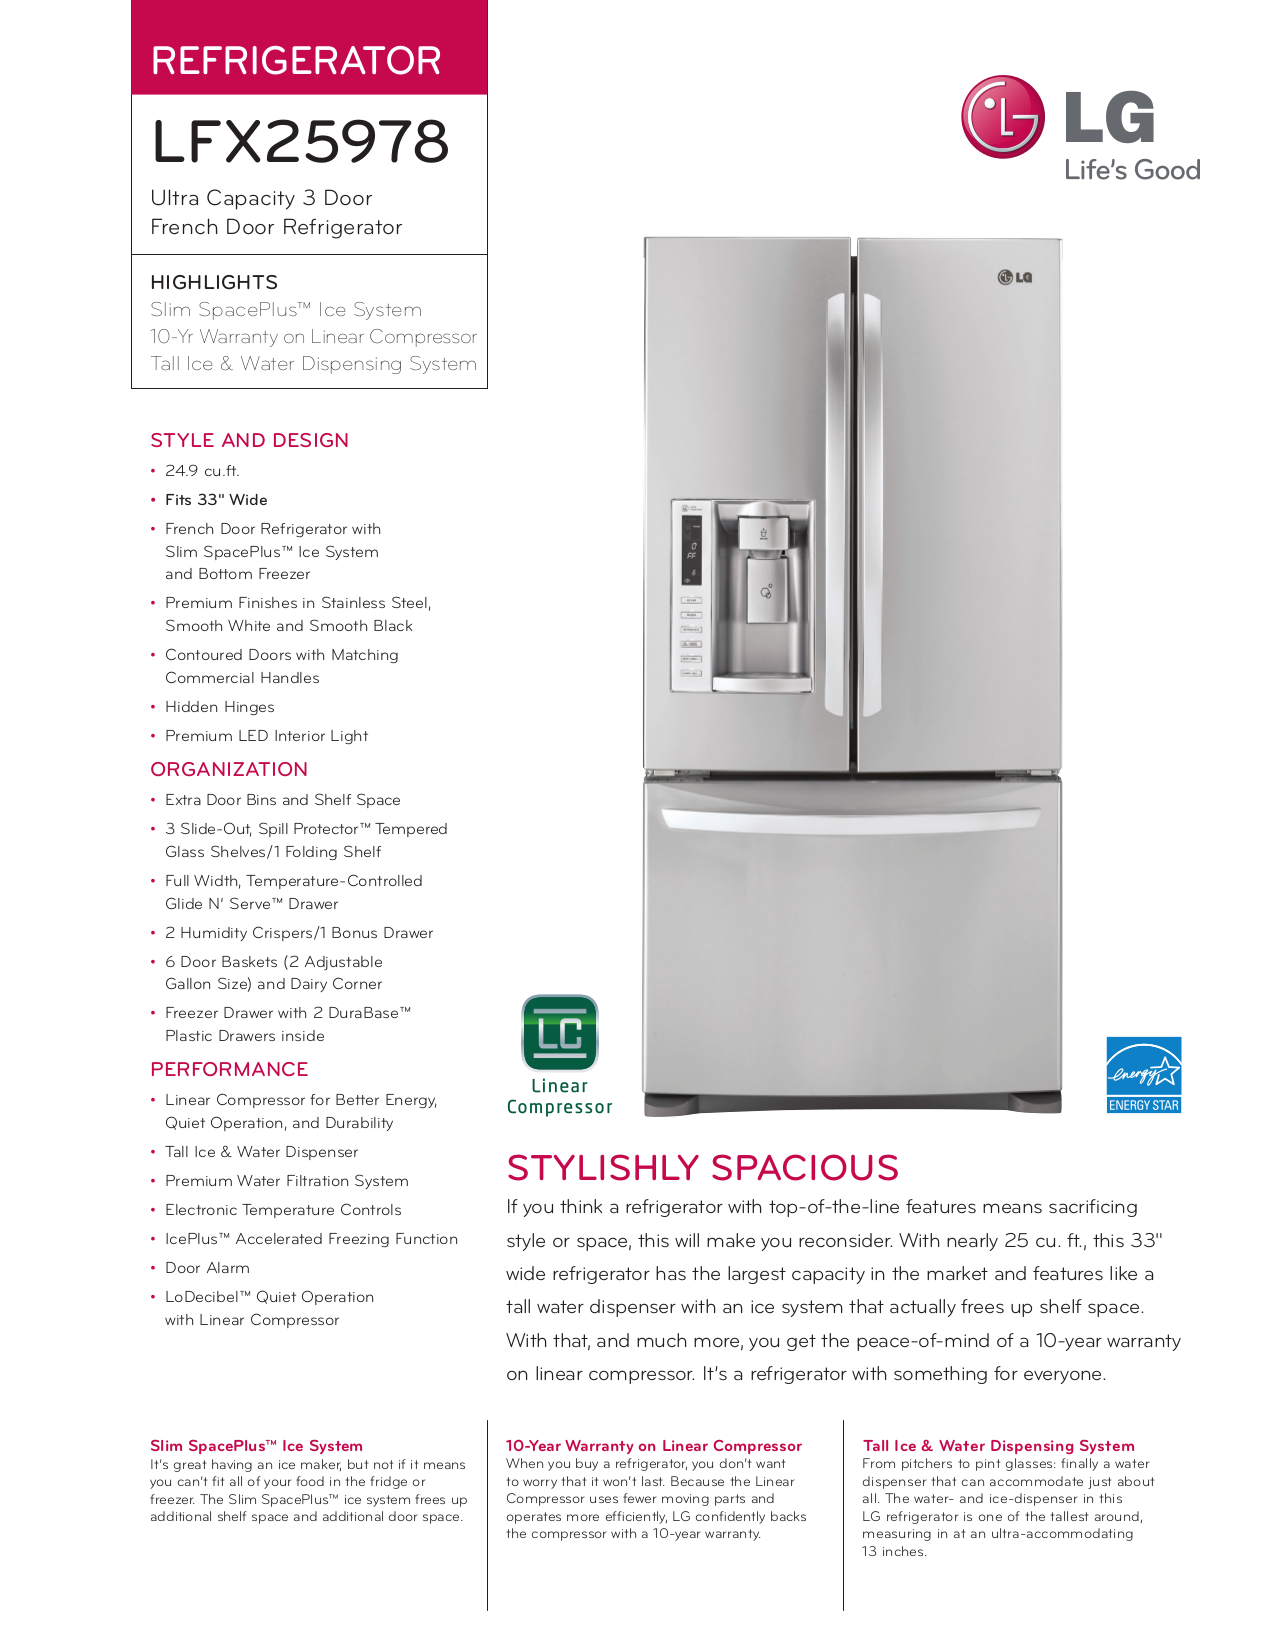 pdf for LG Refrigerator LFX25978 manual